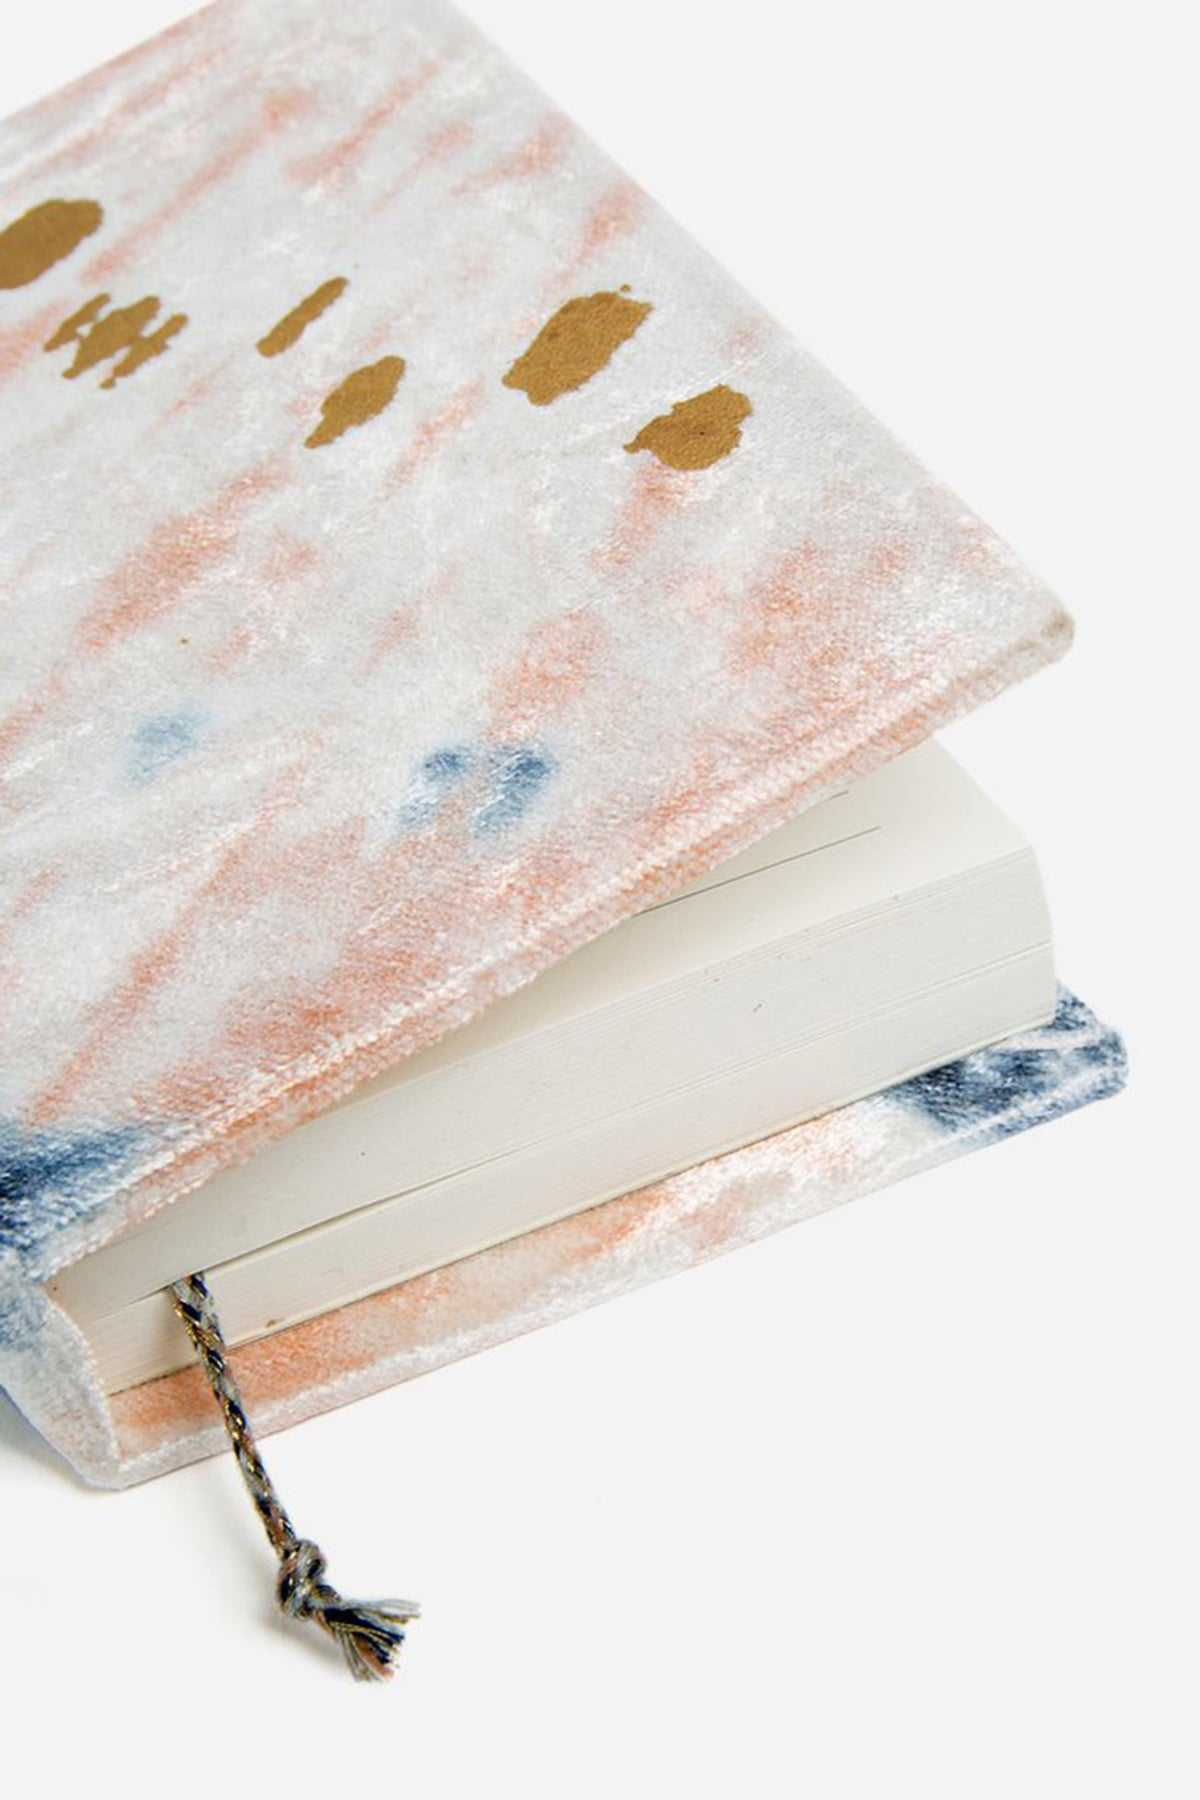 DIAGONAL SHIBORI JOURNAL BY PRINTFRESH